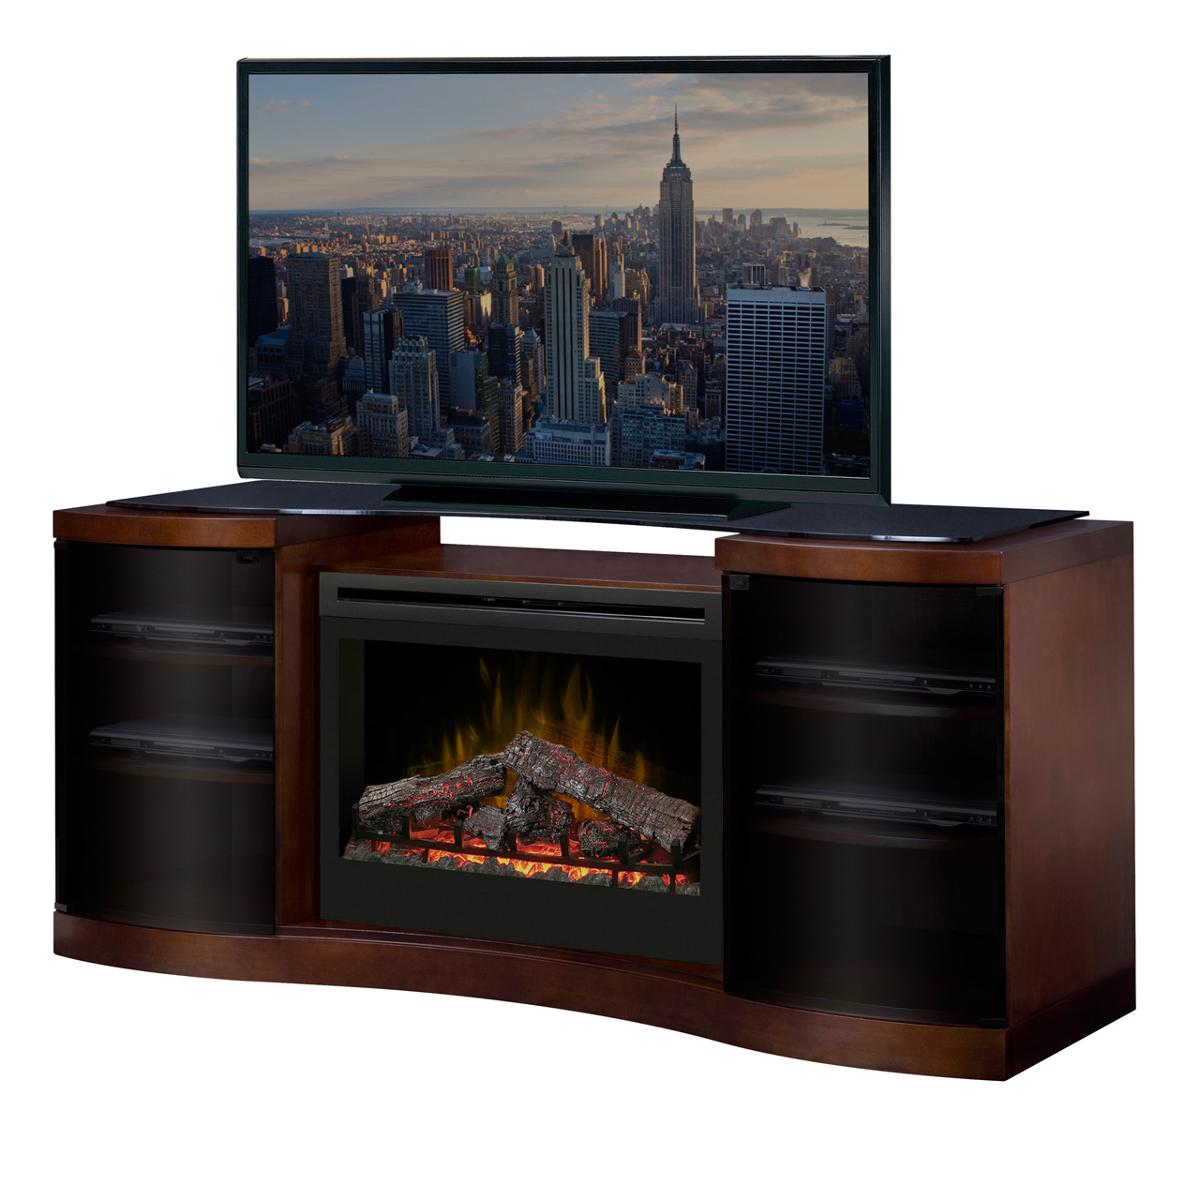 Dimplex Electric Fireplace Series - Taylor's Hearth & Leisure - Long Island, NY